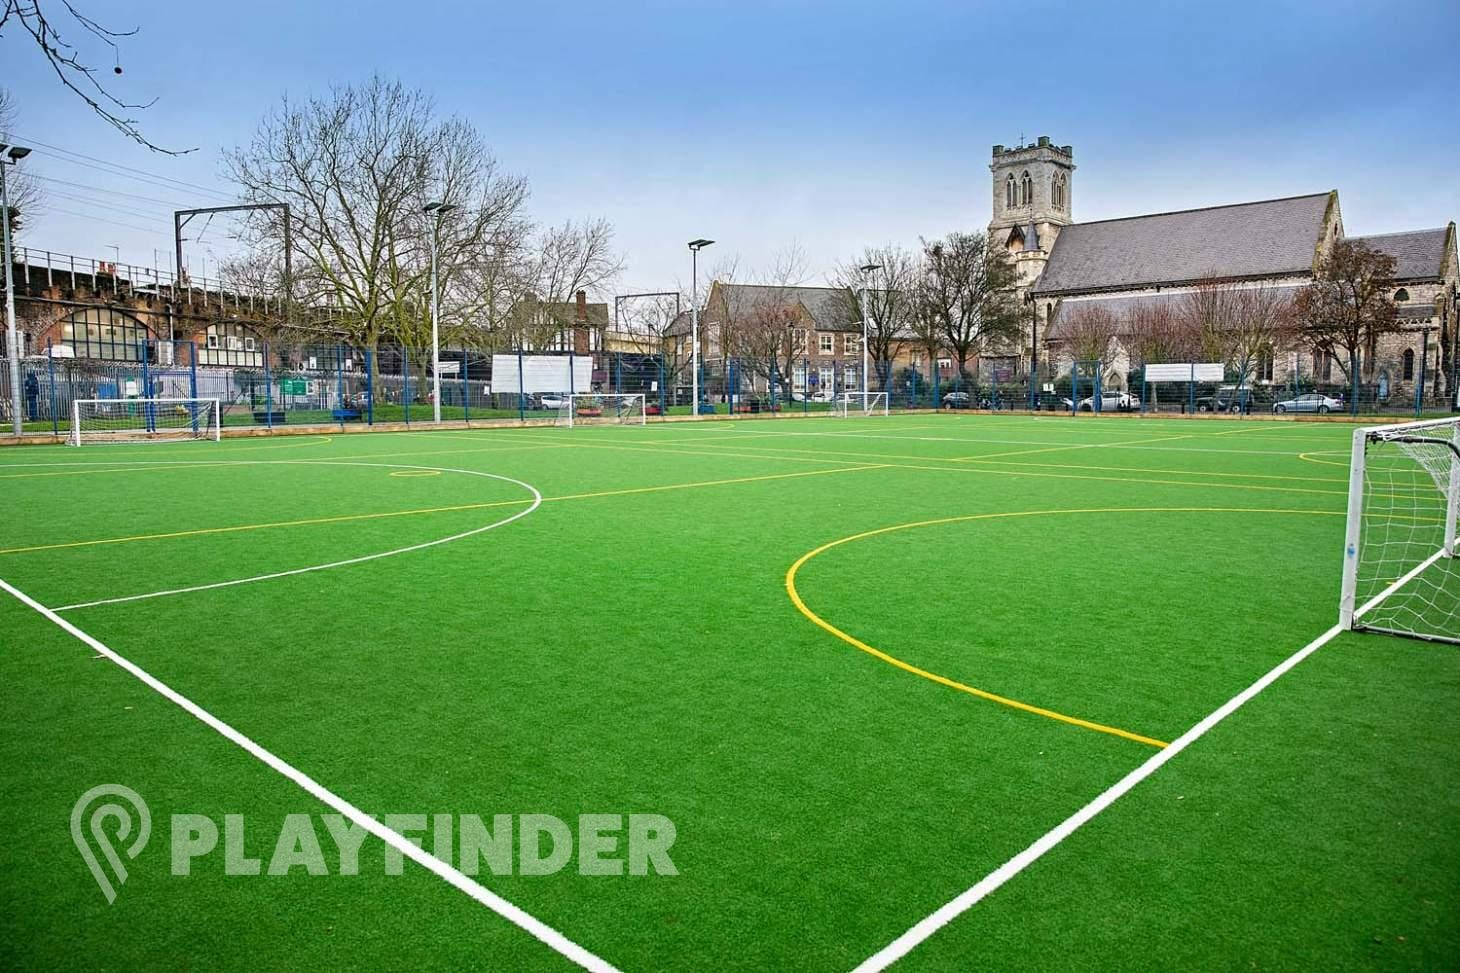 Castlehaven Sports Pitch 5 a side | Astroturf football pitch